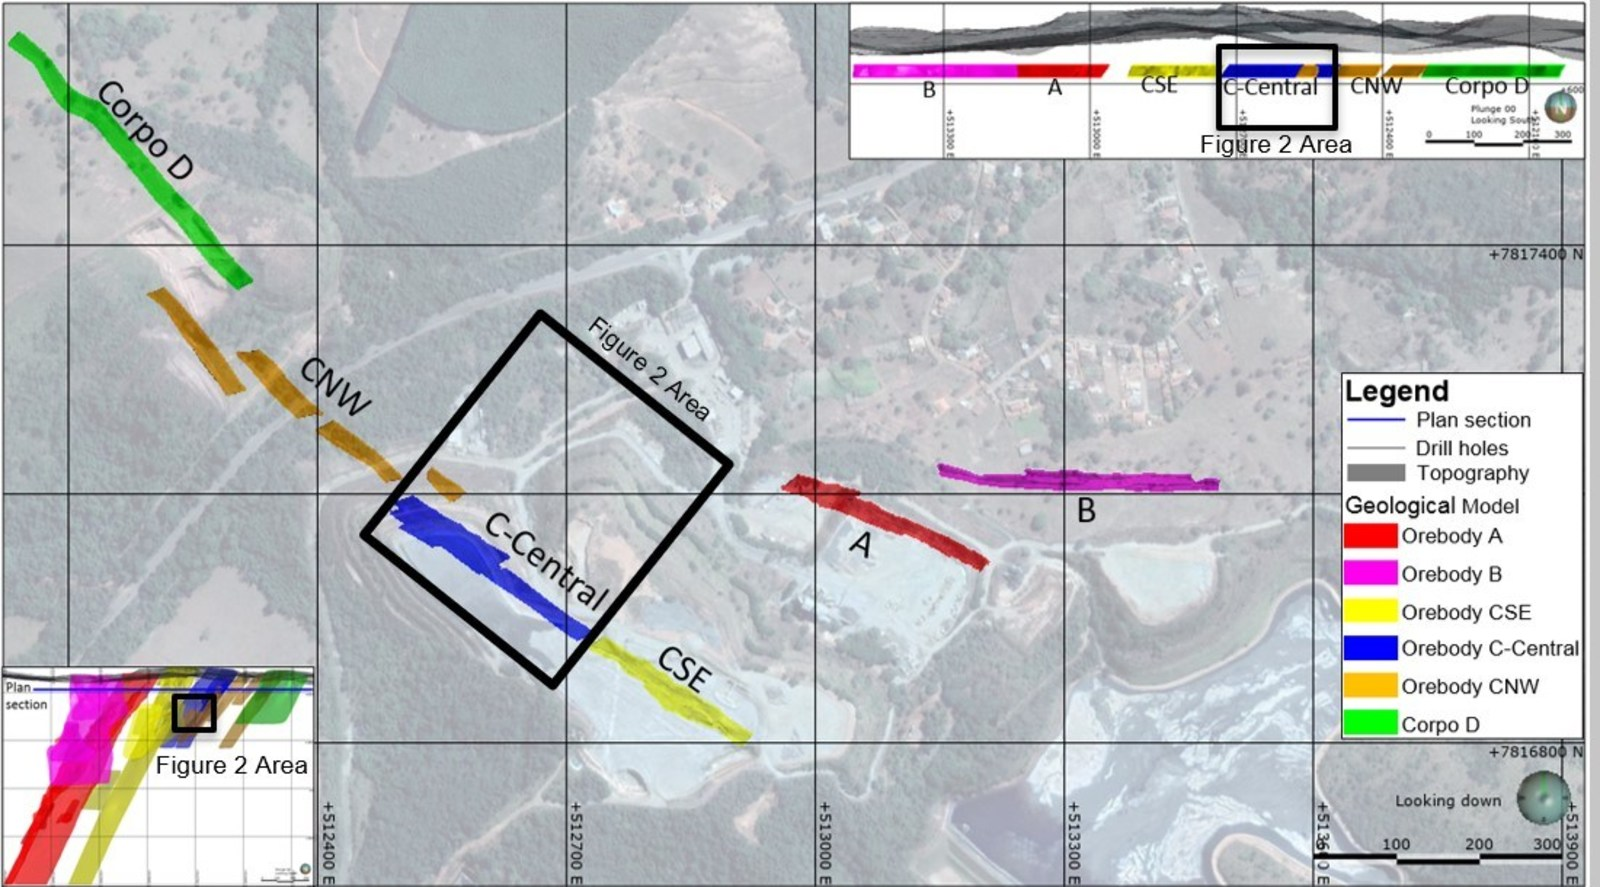 Figure 1. Turmalina Gold Mine – Plan View Projection of Orebodies A, B, C-SE, C-Central, C-NW and D.